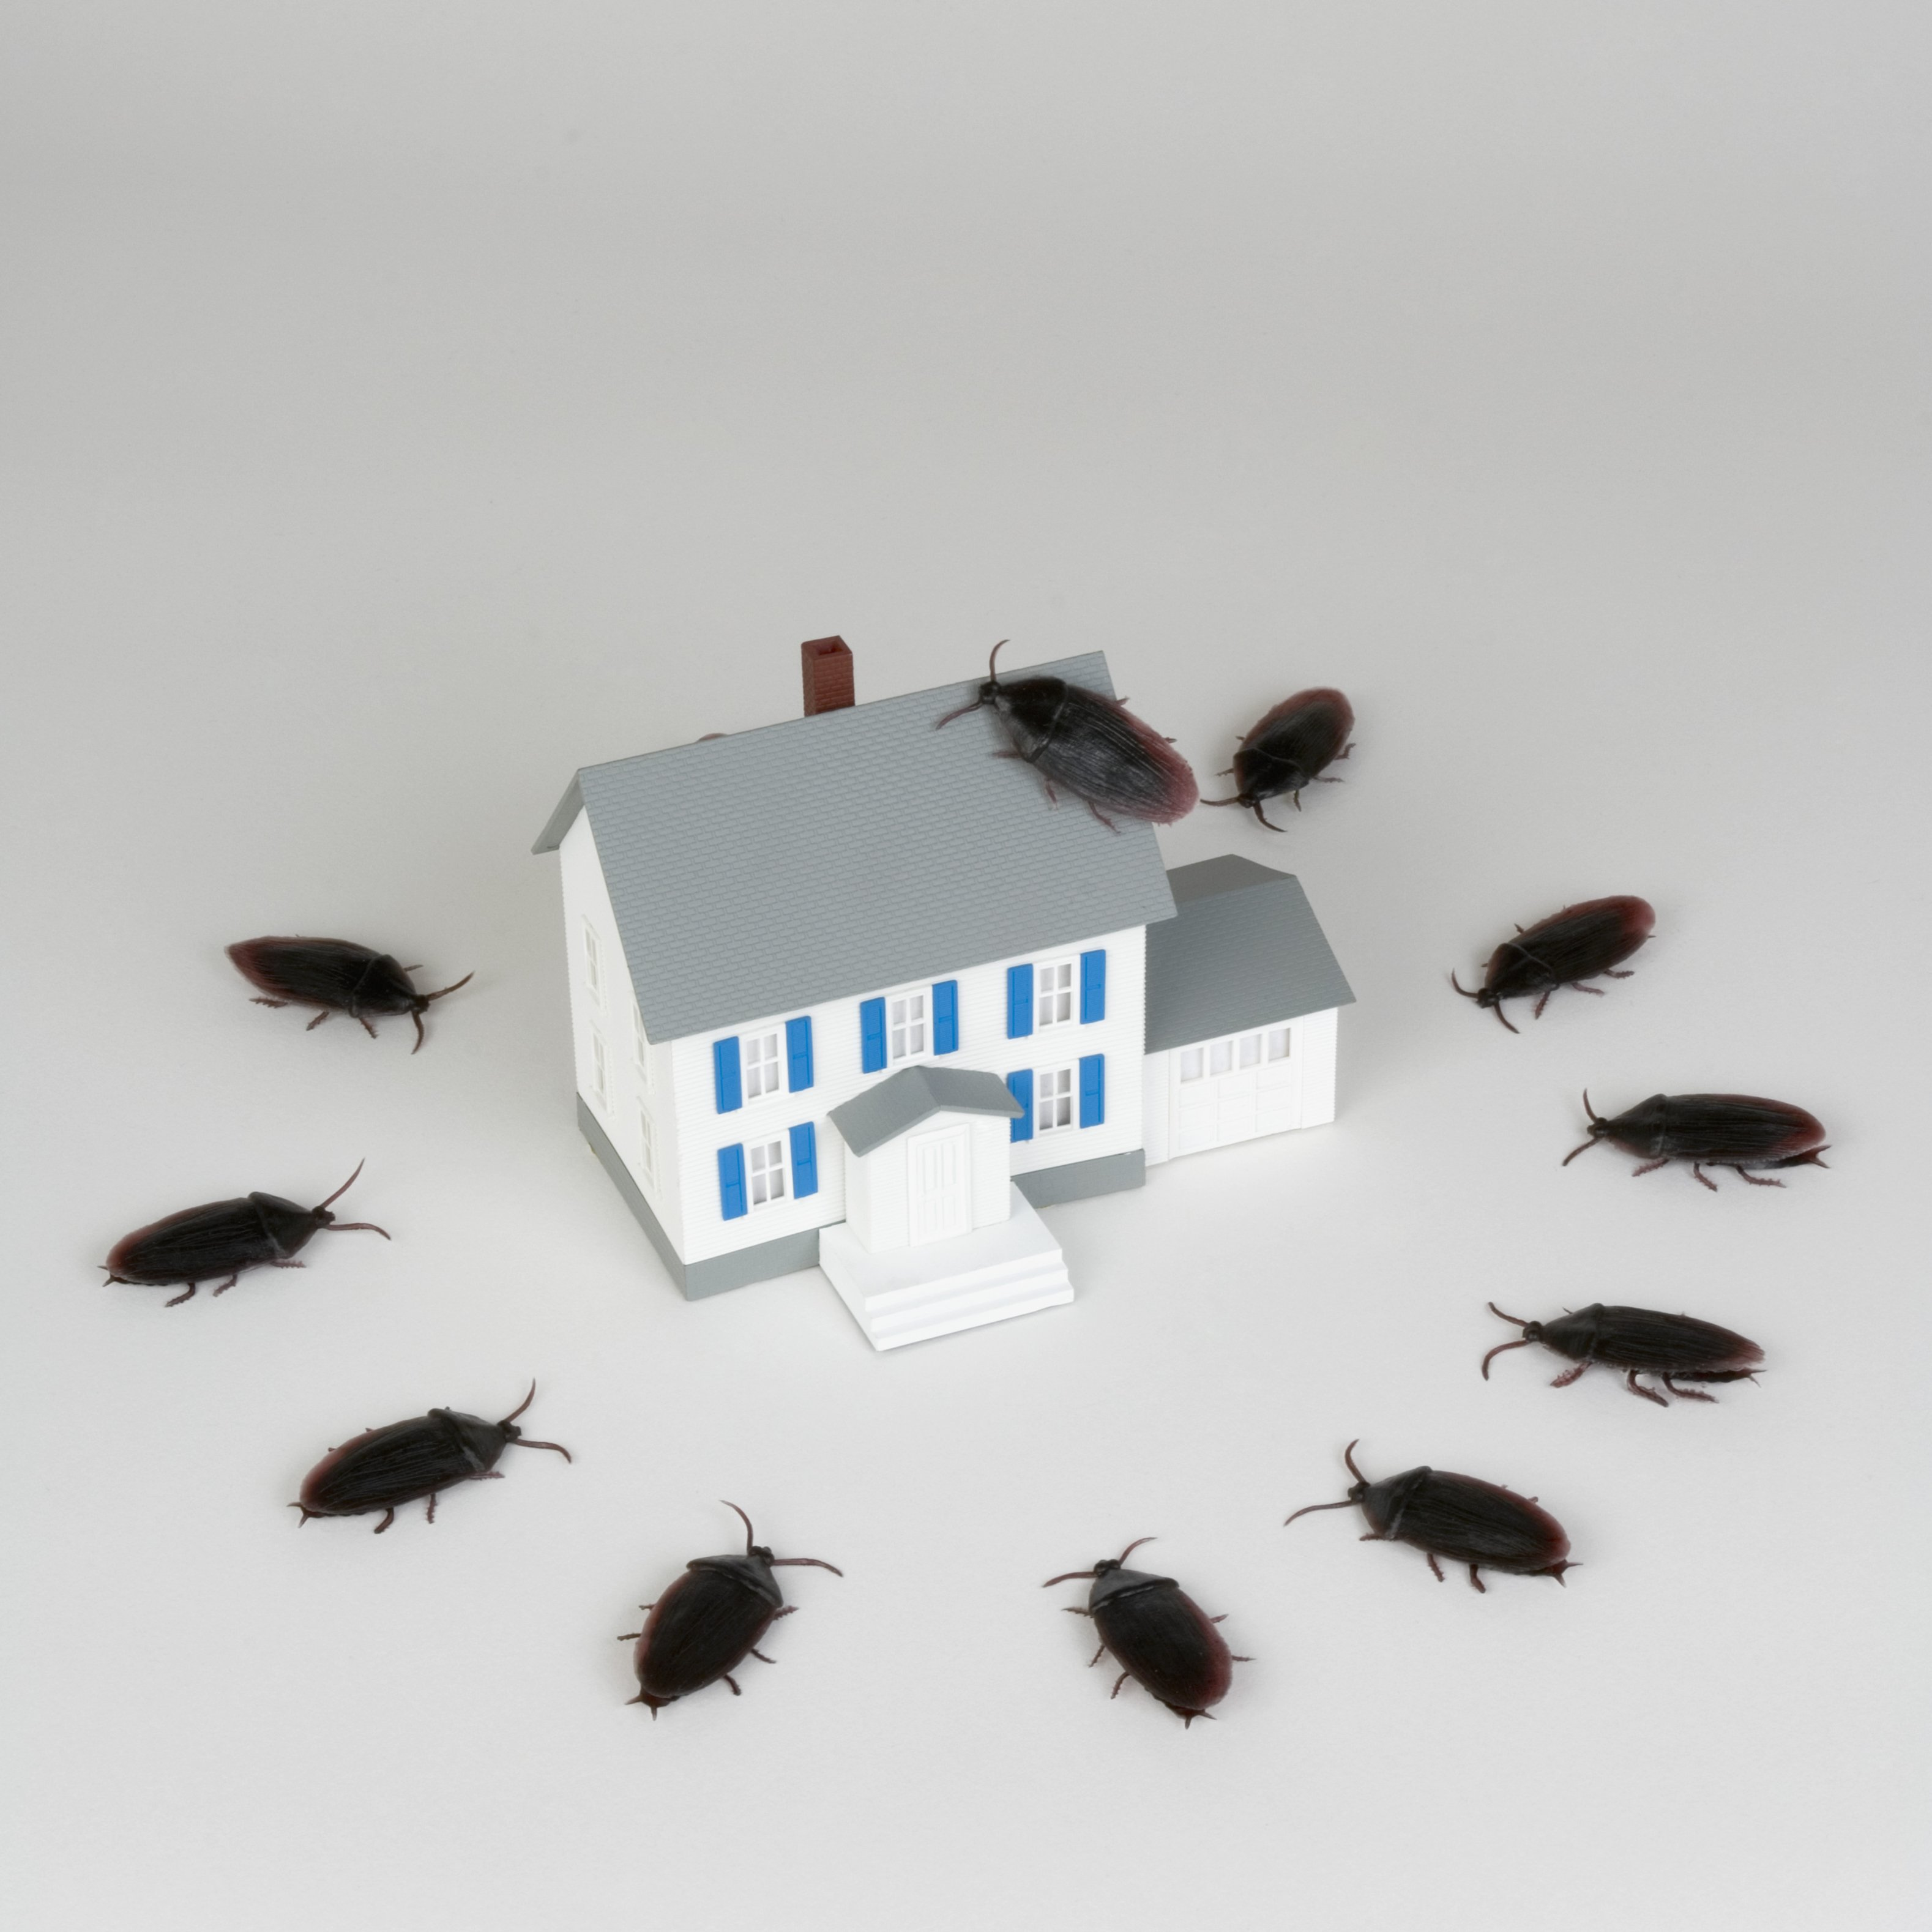 Cold weather drives pest into the warm sanctuary of your home